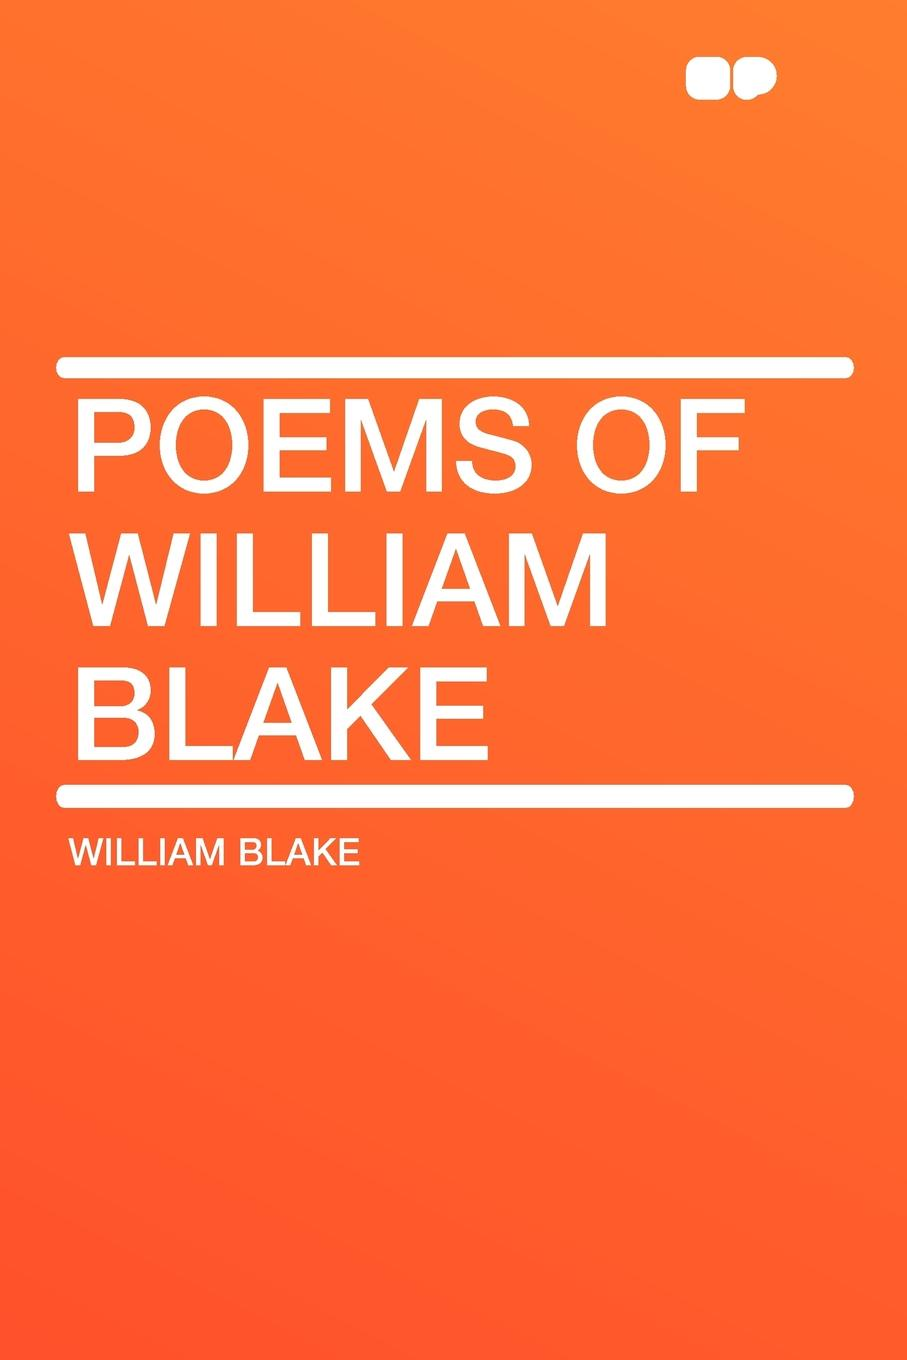 William Blake Poems of